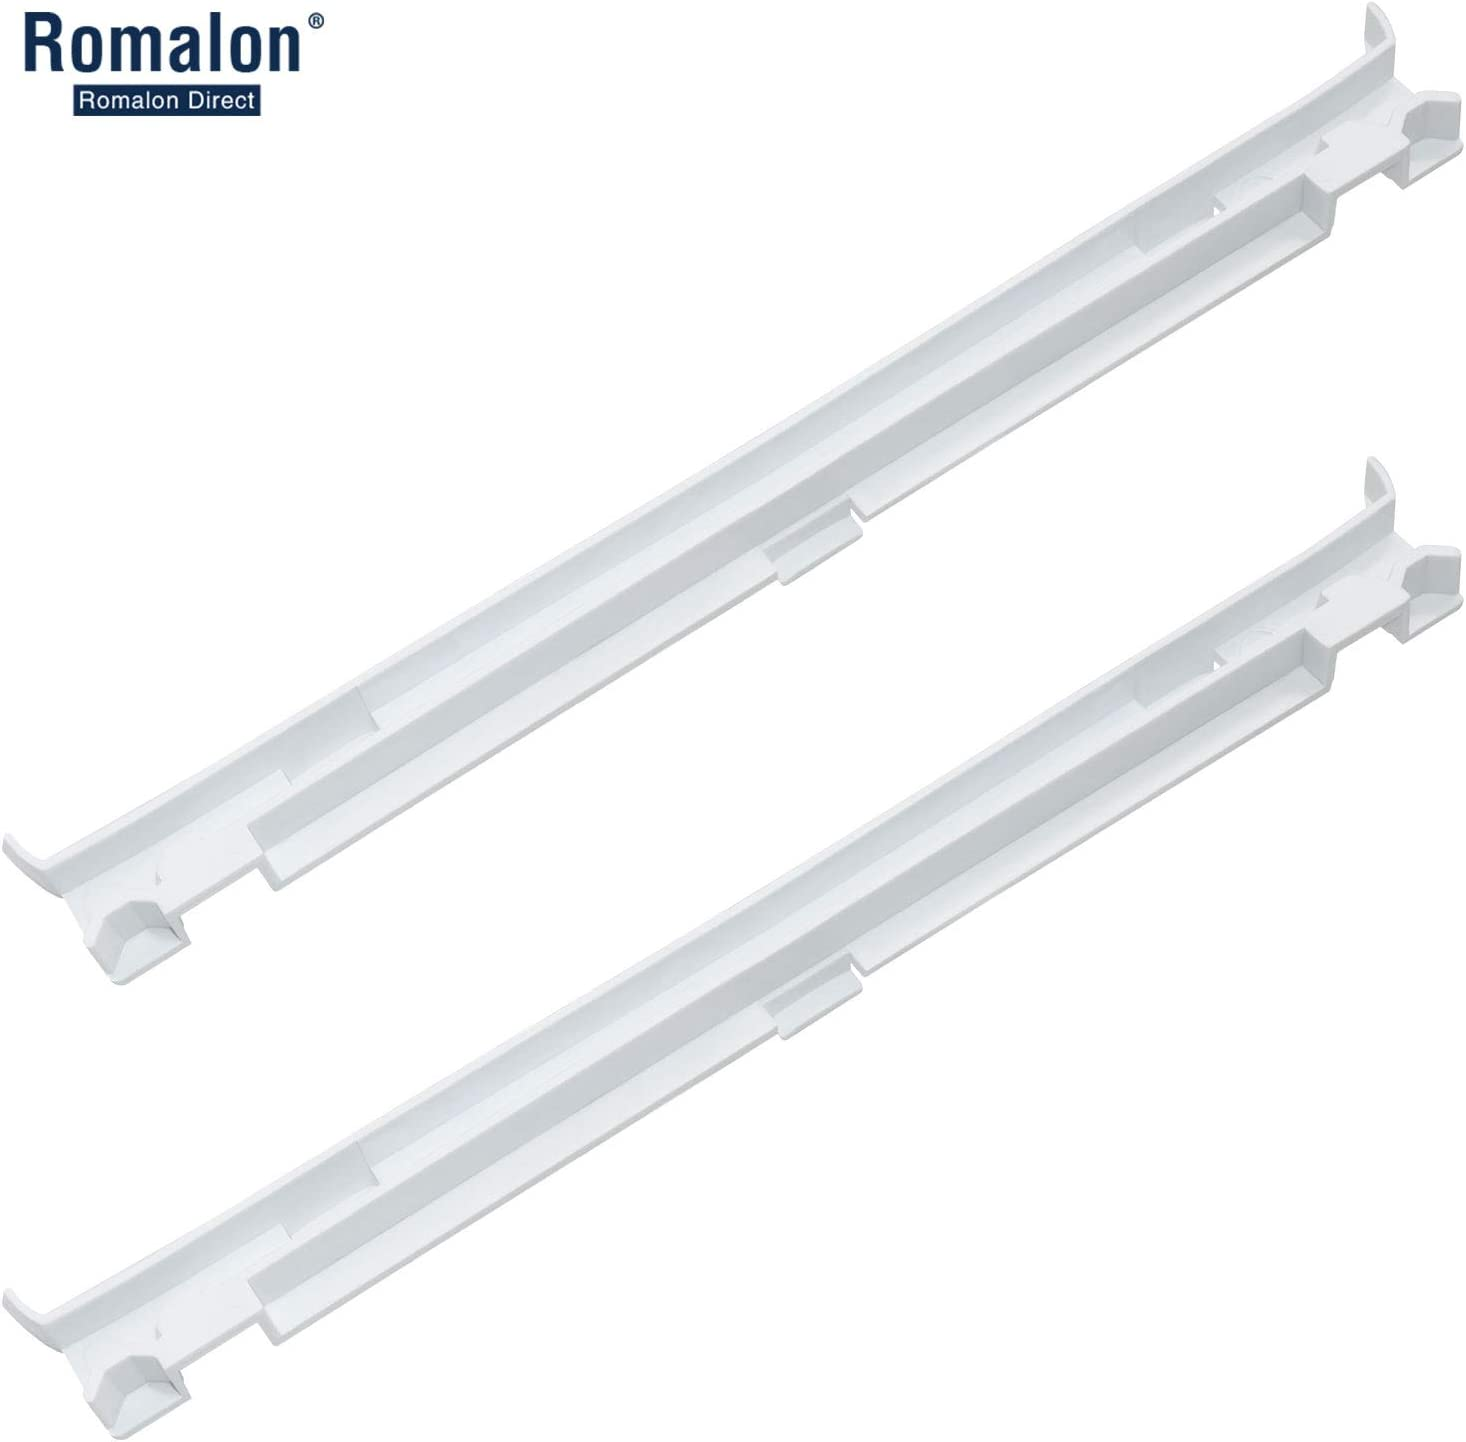 Romalon 2-Pack 2223320 Track Refrigerator Crisper Drawer Slide Rail Compatible With Whirlpool Refrigerator Pan Slide Replace Number 1016208, AH869557, EA869557, PS869557 - a set of Rails